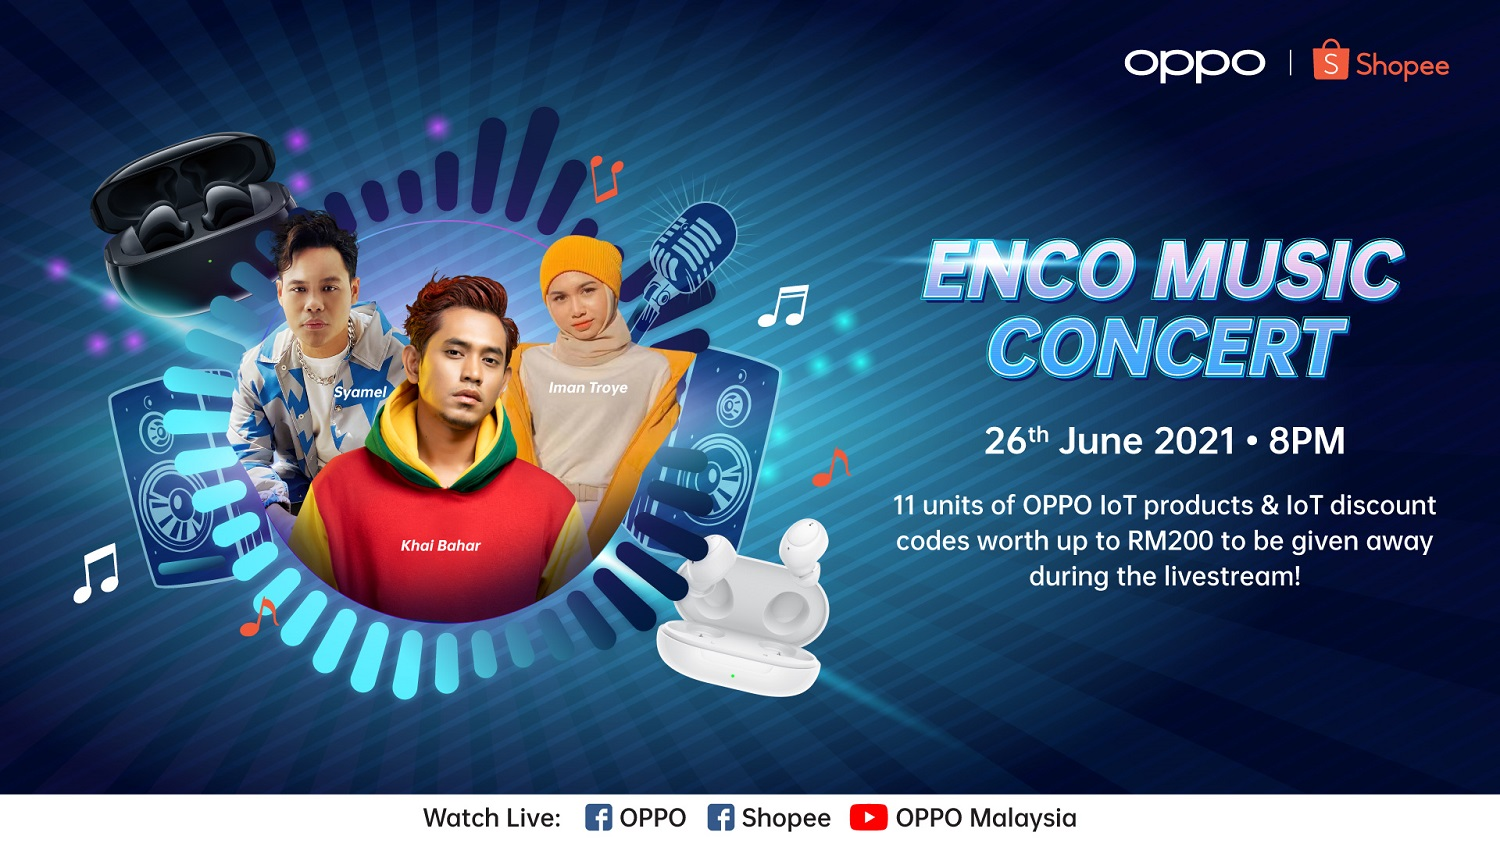 Revitalize Your Weekend with the Enco Music Concert by OPPO and Shopee